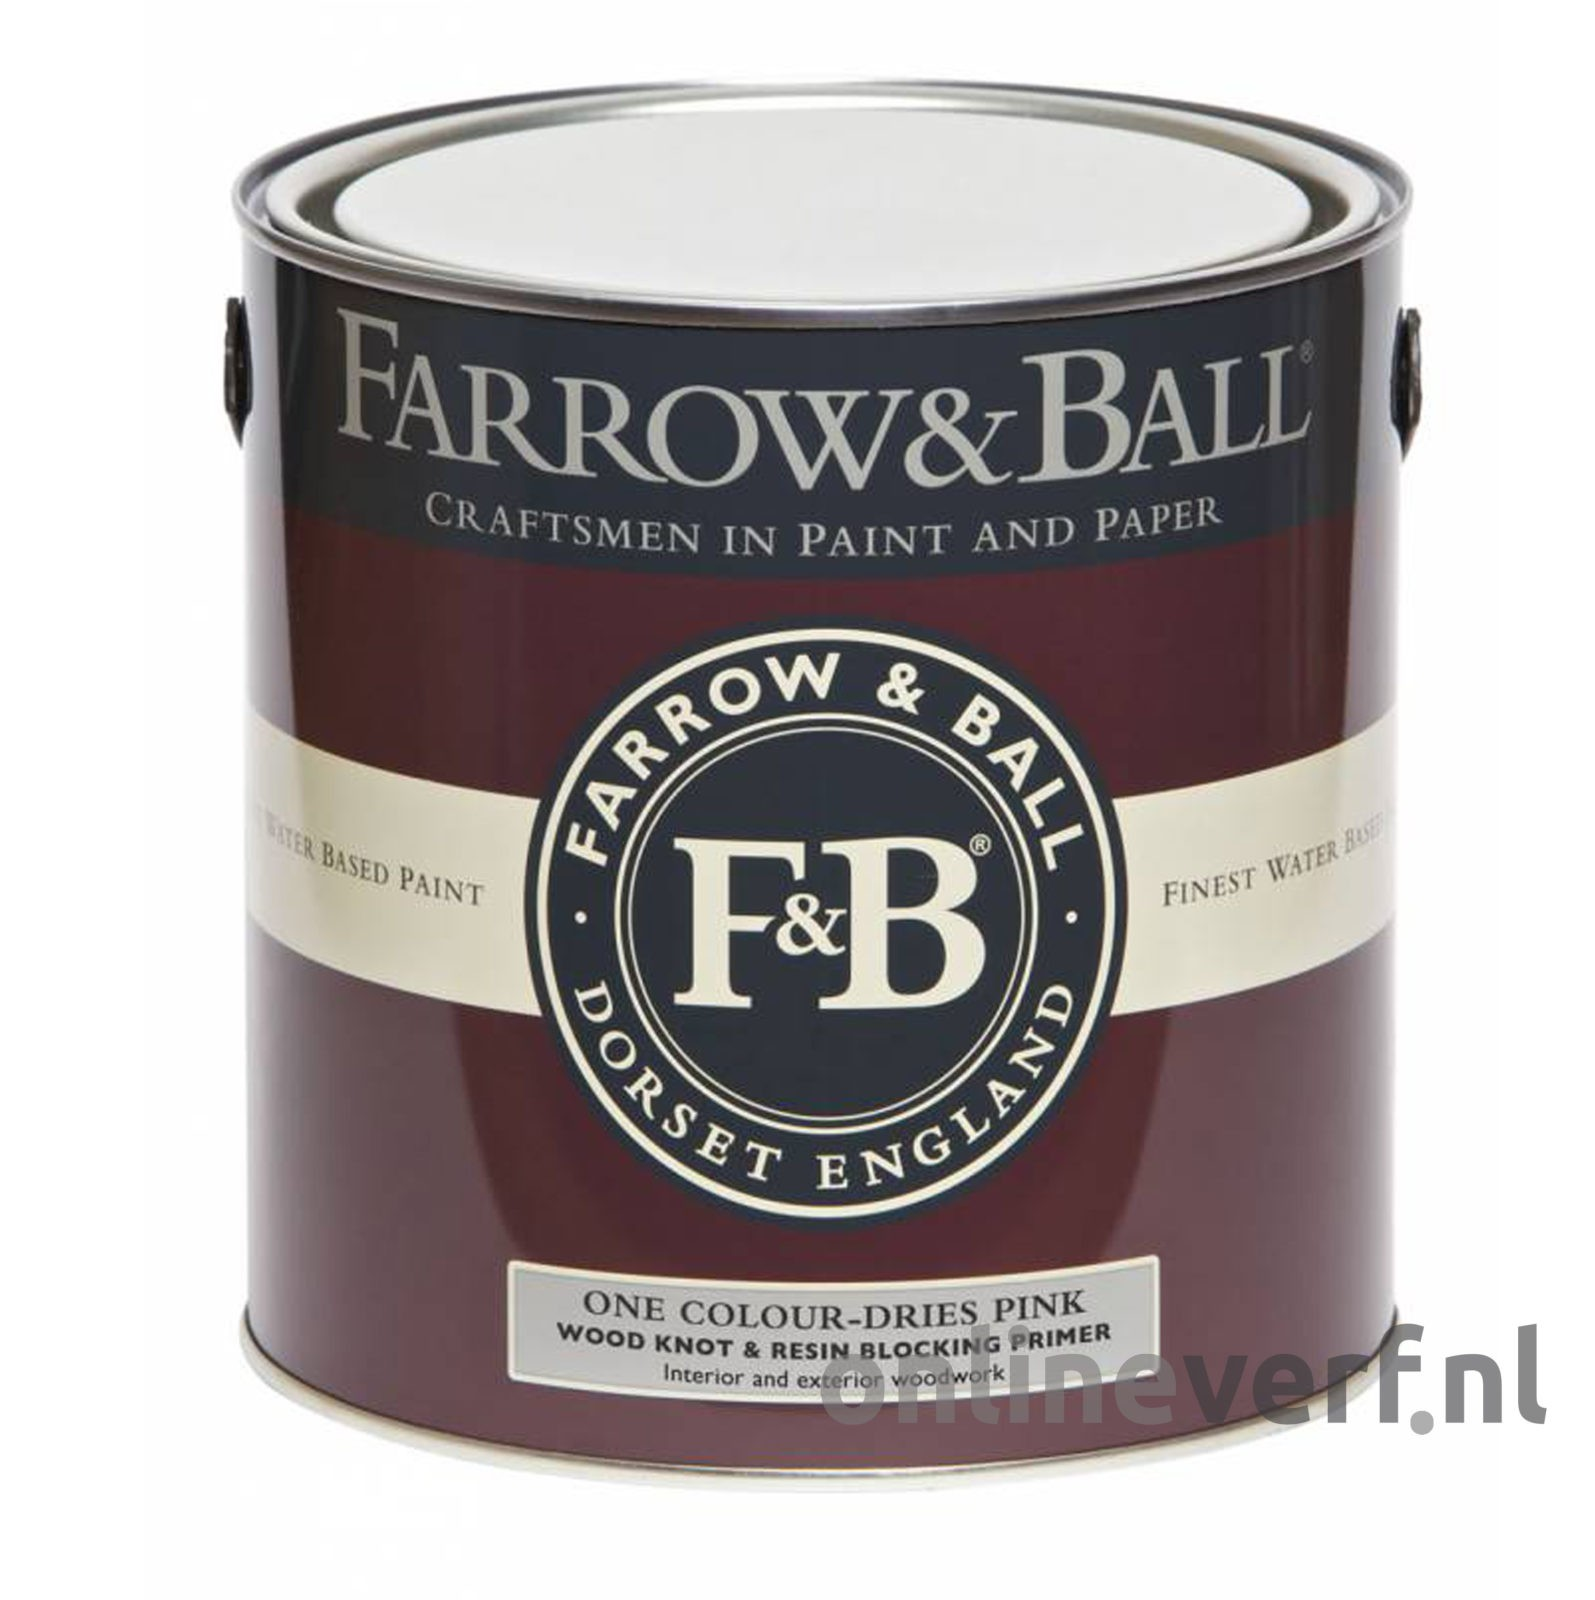 Farrow & Ball Wood Knot Resin Blocking Primer